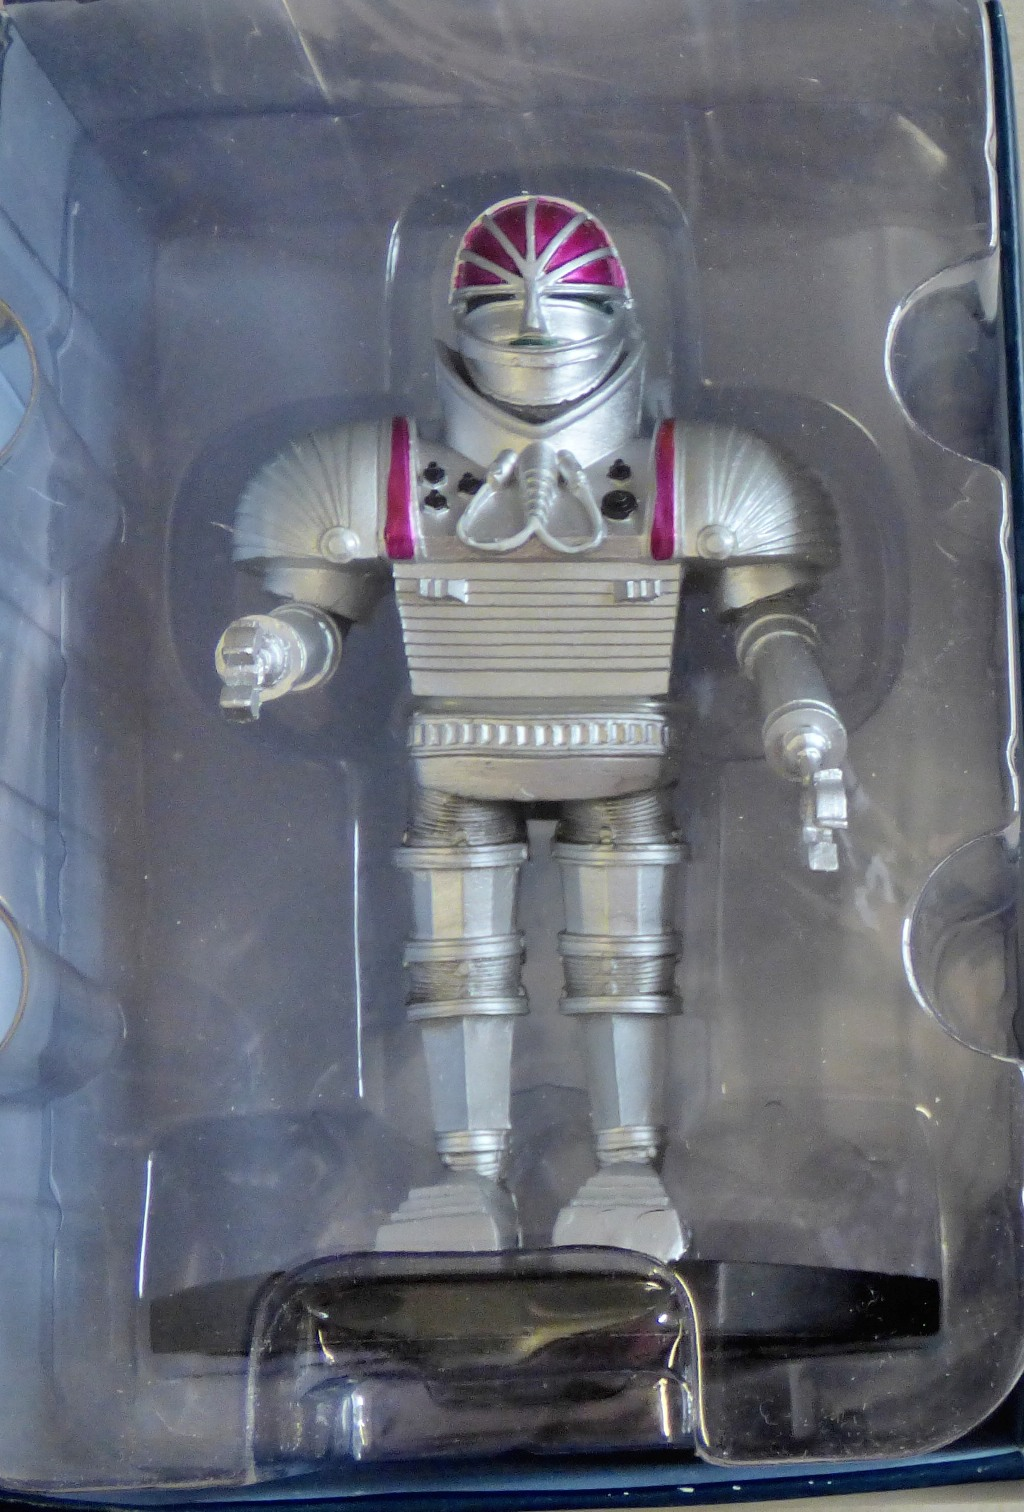 Lot 2 - Dr Who- Figure 'K1 Robot', new in original box mint condition Model ABZ6994